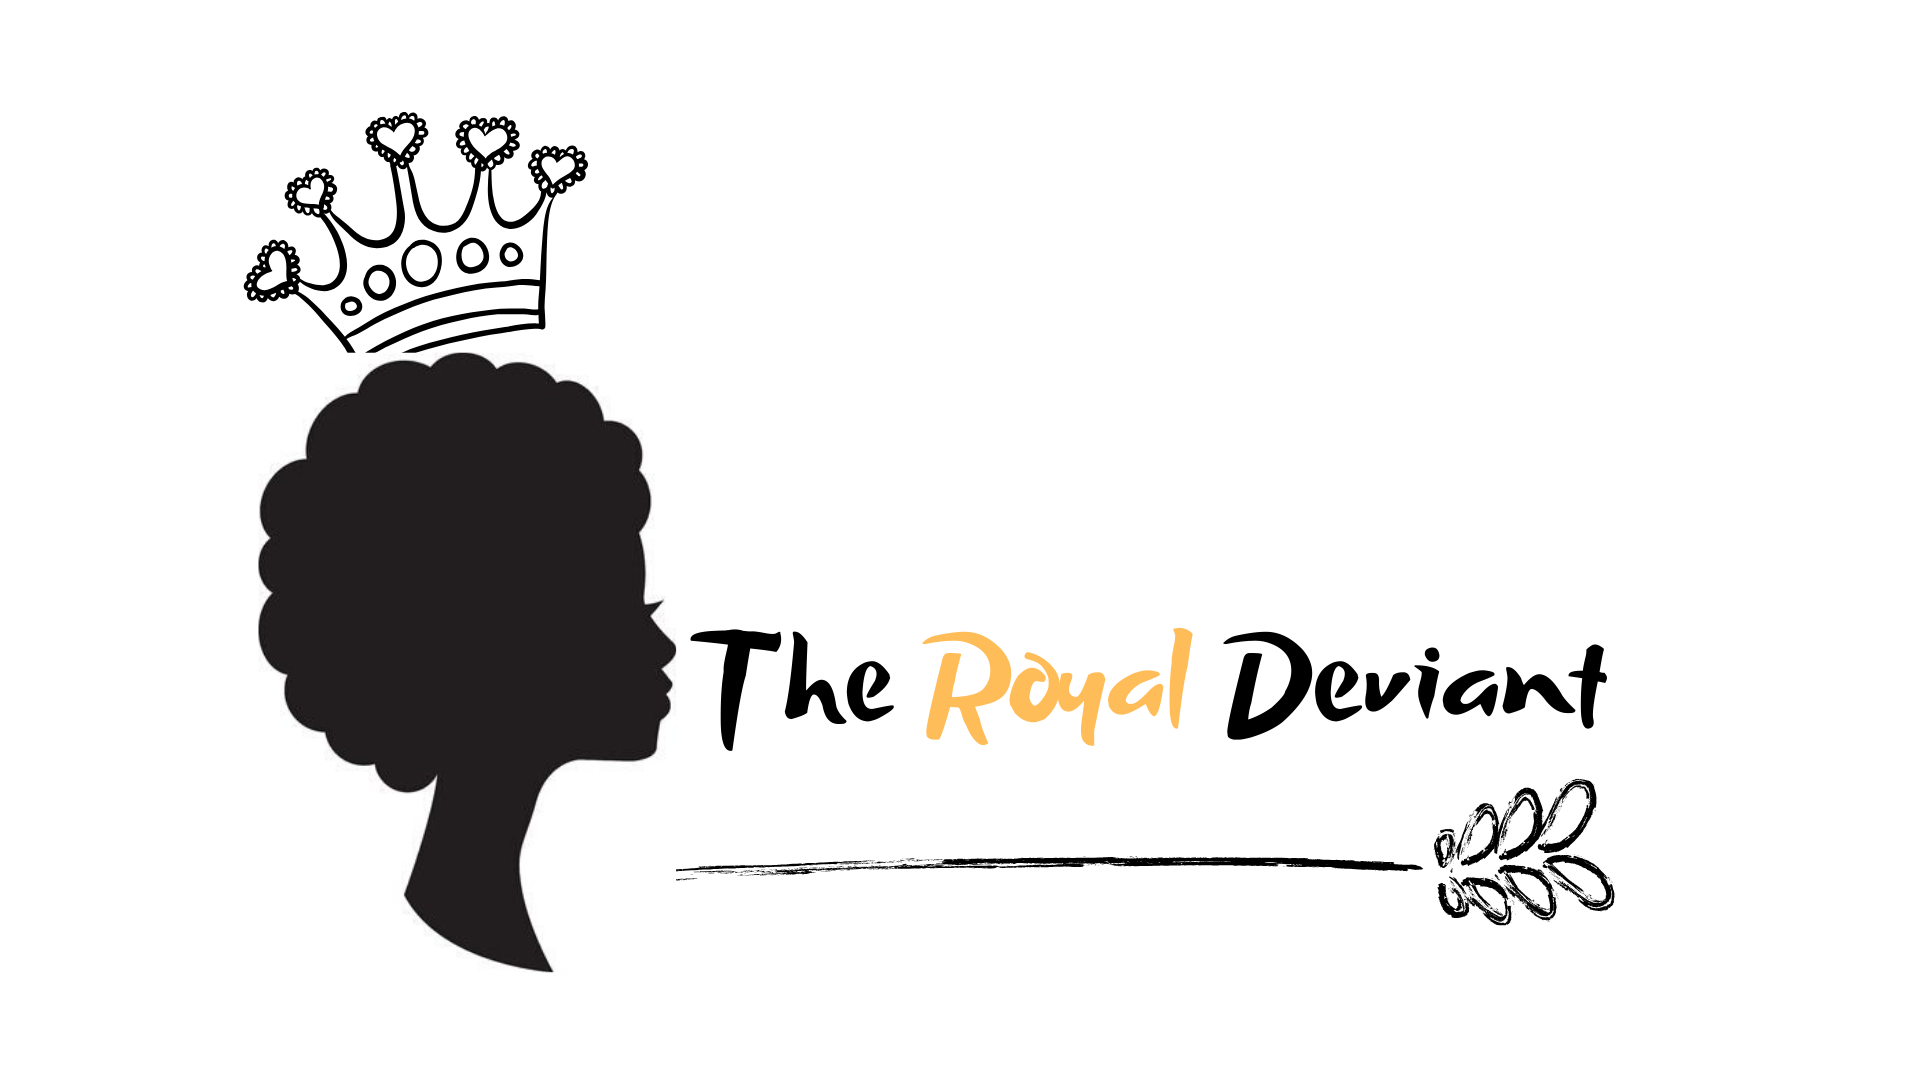 The Royal Deviant